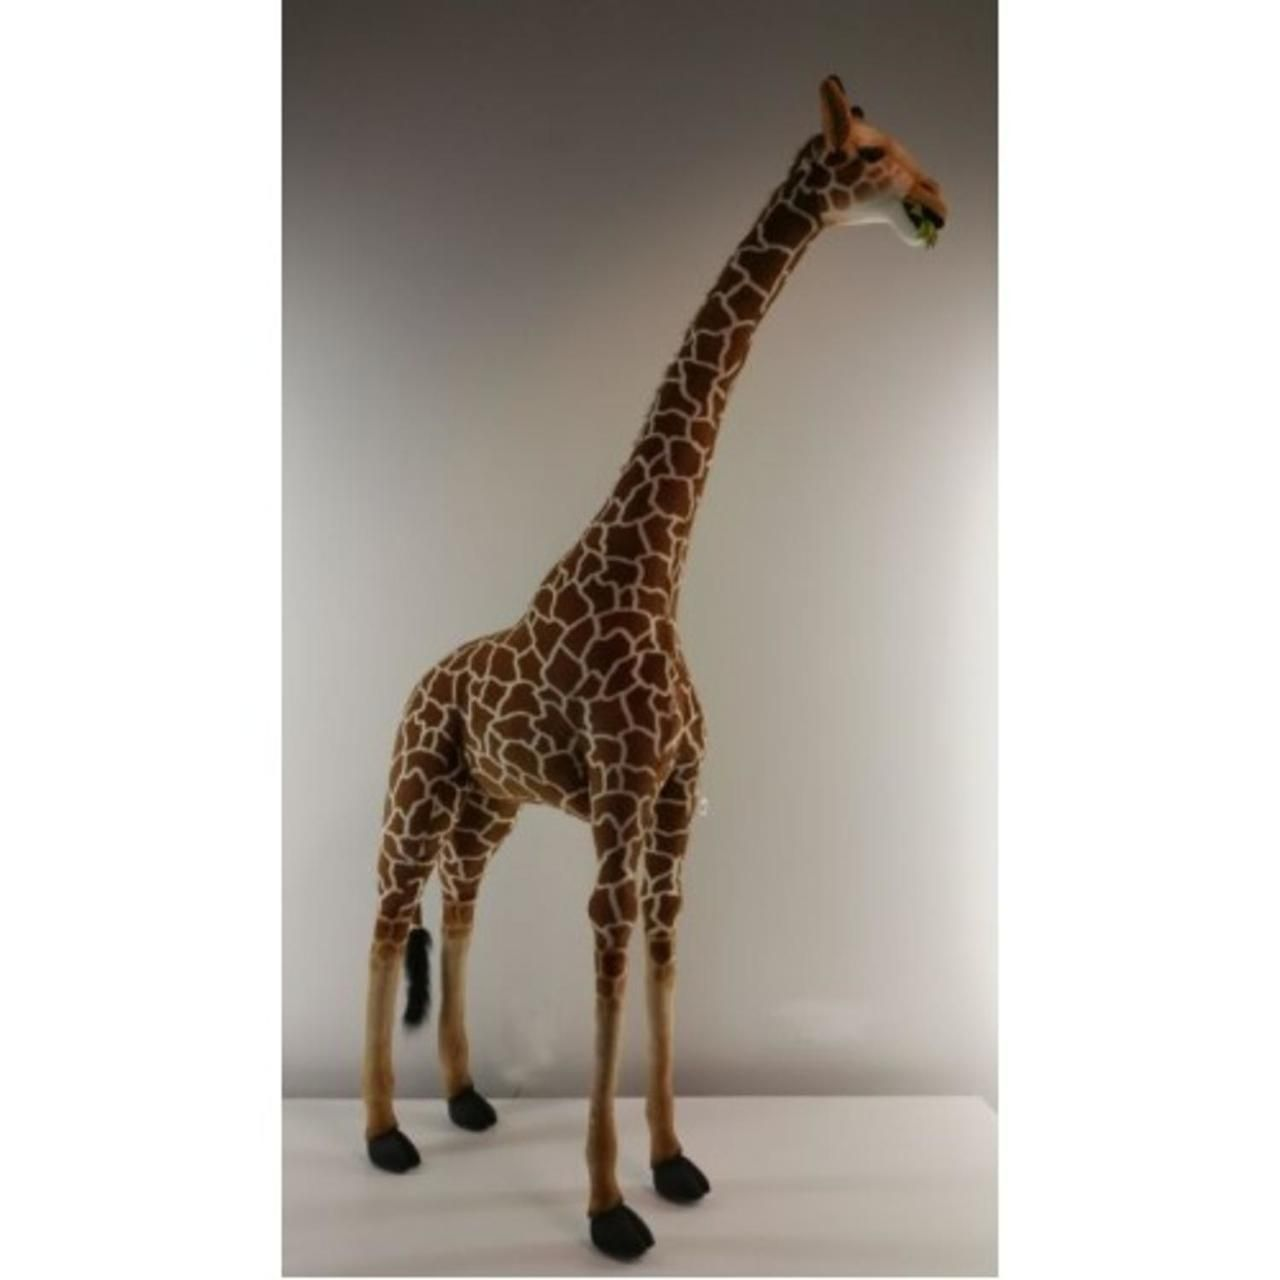 93 75 Brown And Beige Handcrafted Soft Plush Giraffe Stuffed Animal In 2021 Giraffe Stuffed Animal Large Stuffed Animals Large Giraffe Stuffed Animal [ 1280 x 1280 Pixel ]